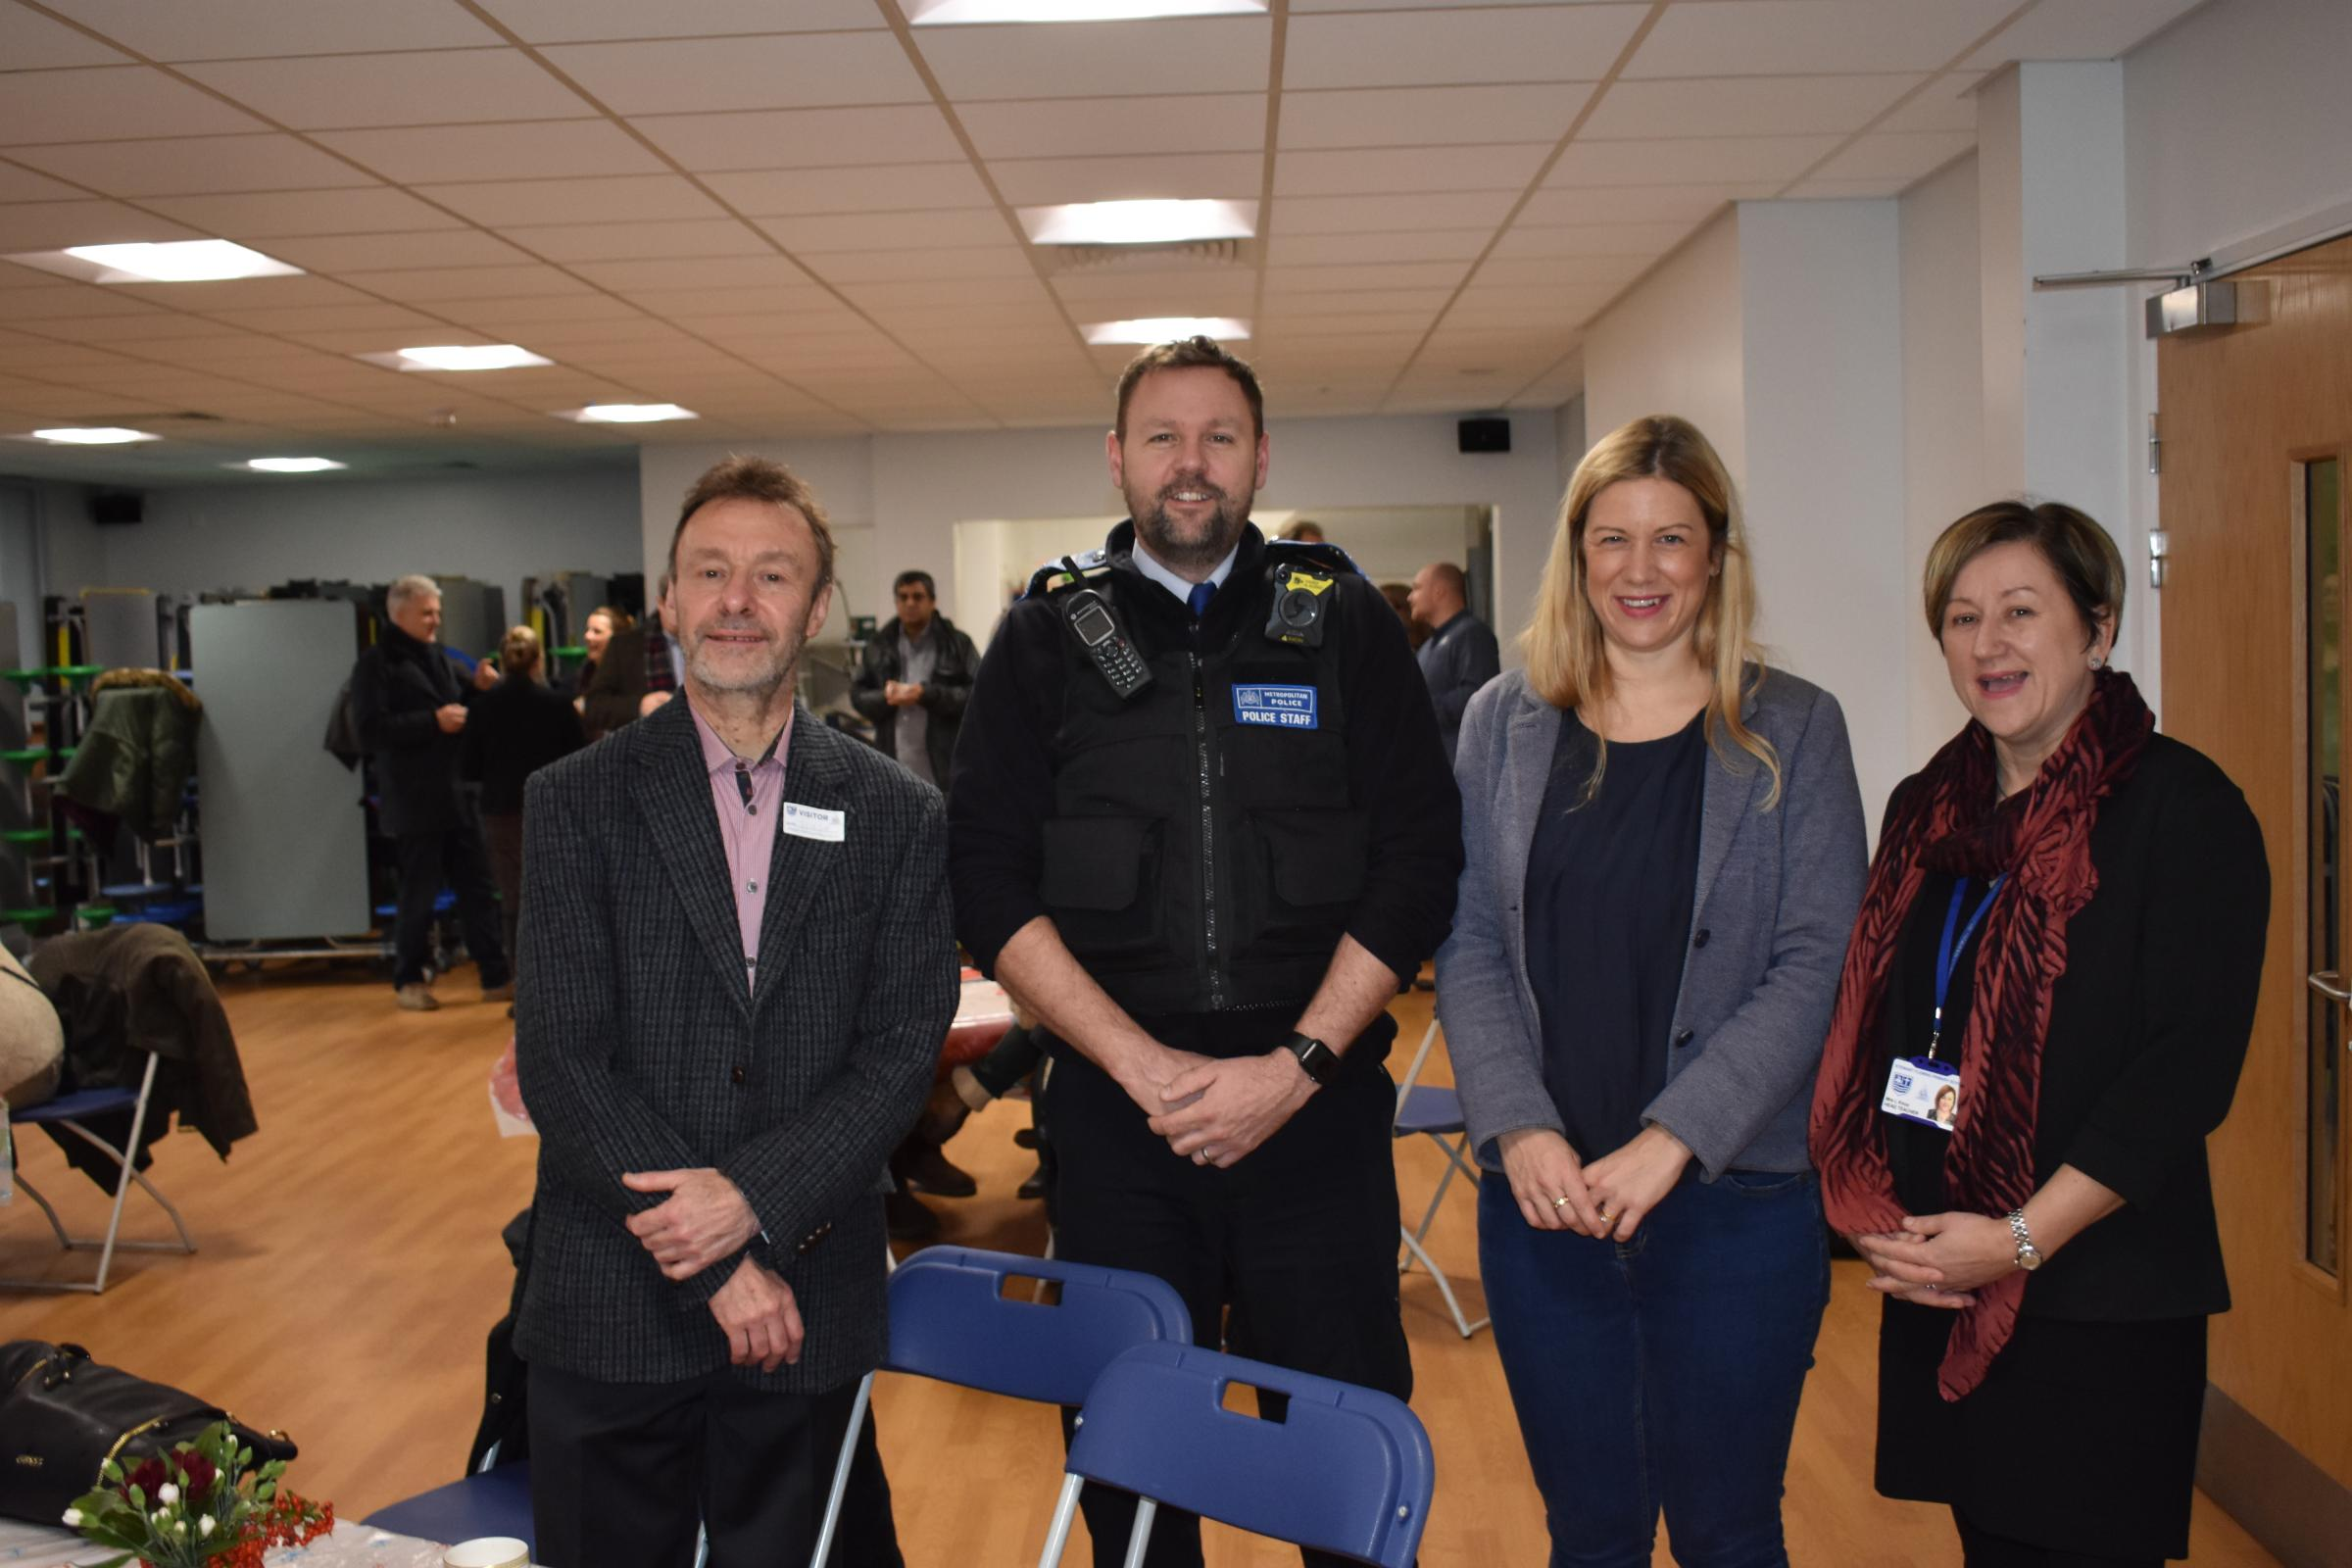 Cllr Ian Dunn, police officer, MP Ellie Reeves and head teacher Louise Knox